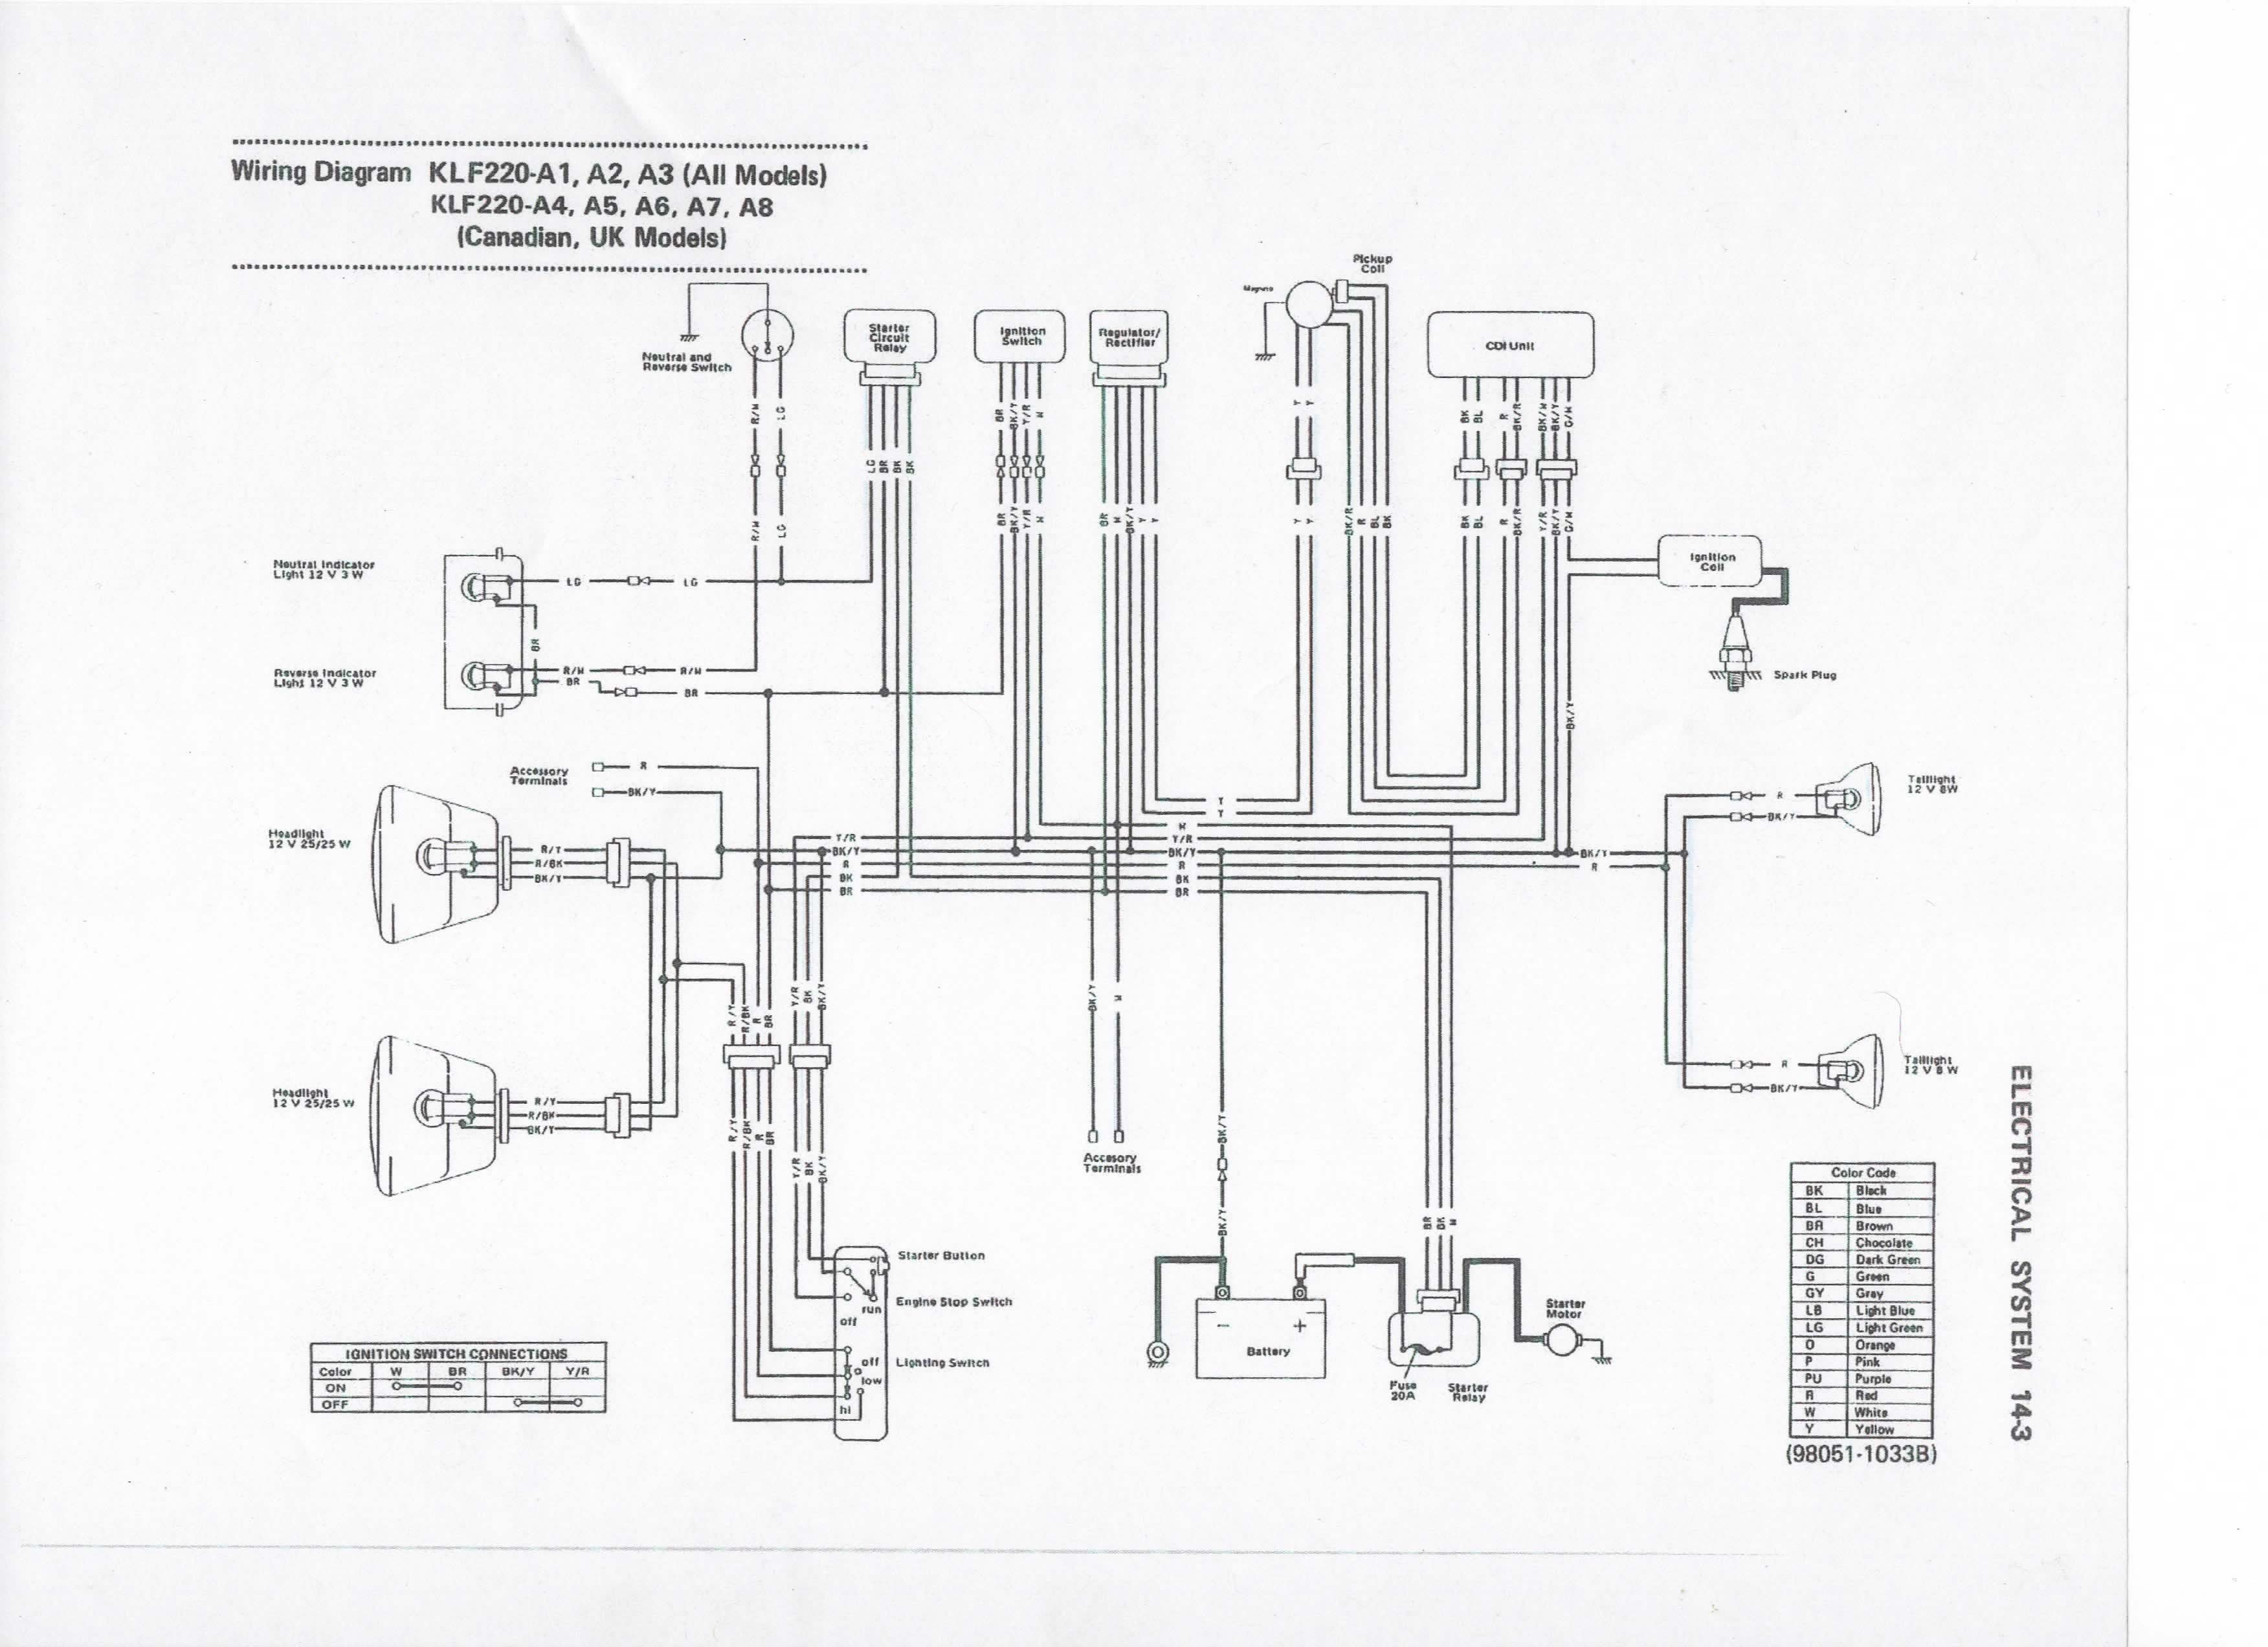 kawasaki 250 4 wheeler 2007 wiring diagram - wiring diagram quit-overview -  quit-overview.lasuiteclub.it  lasuiteclub.it